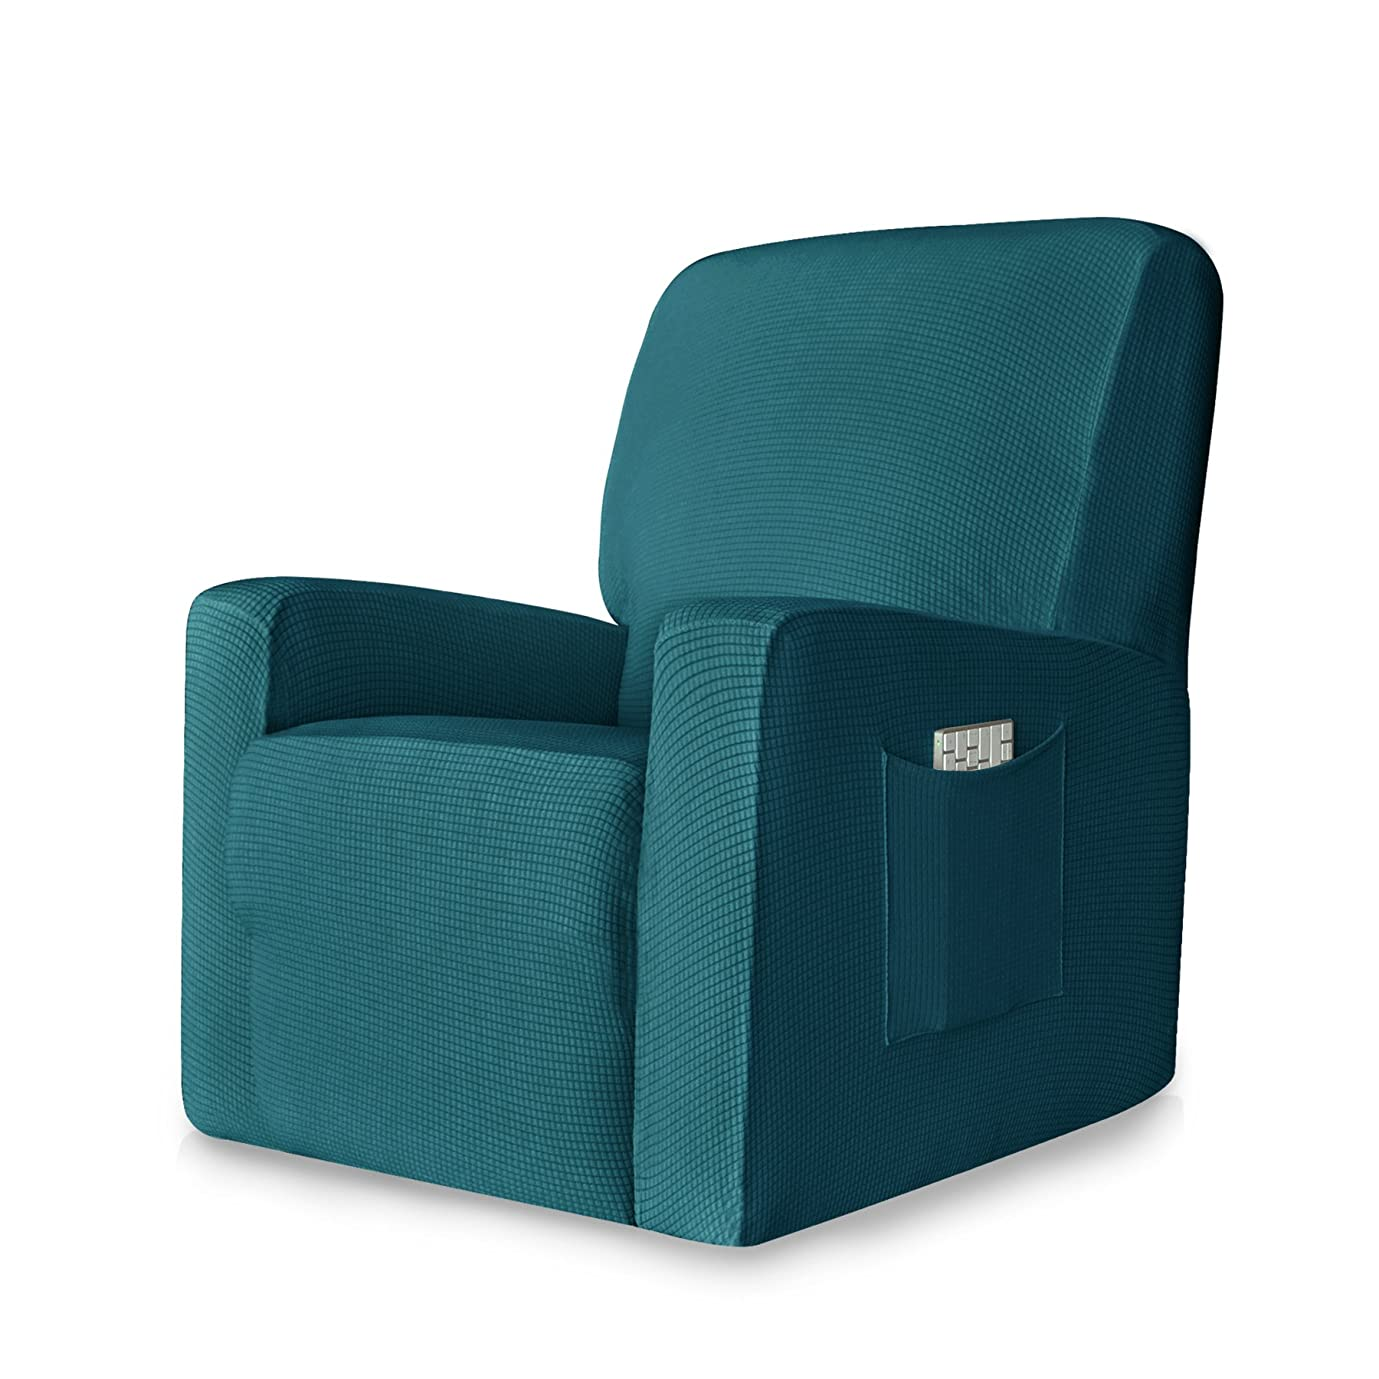 タブレットワイヤー熟練した(Recliner, Blue) - CHUN YI 1-Piece Stretch Spandex Jacquard Recliner Chair Slipcovers (Recliner, Blue)